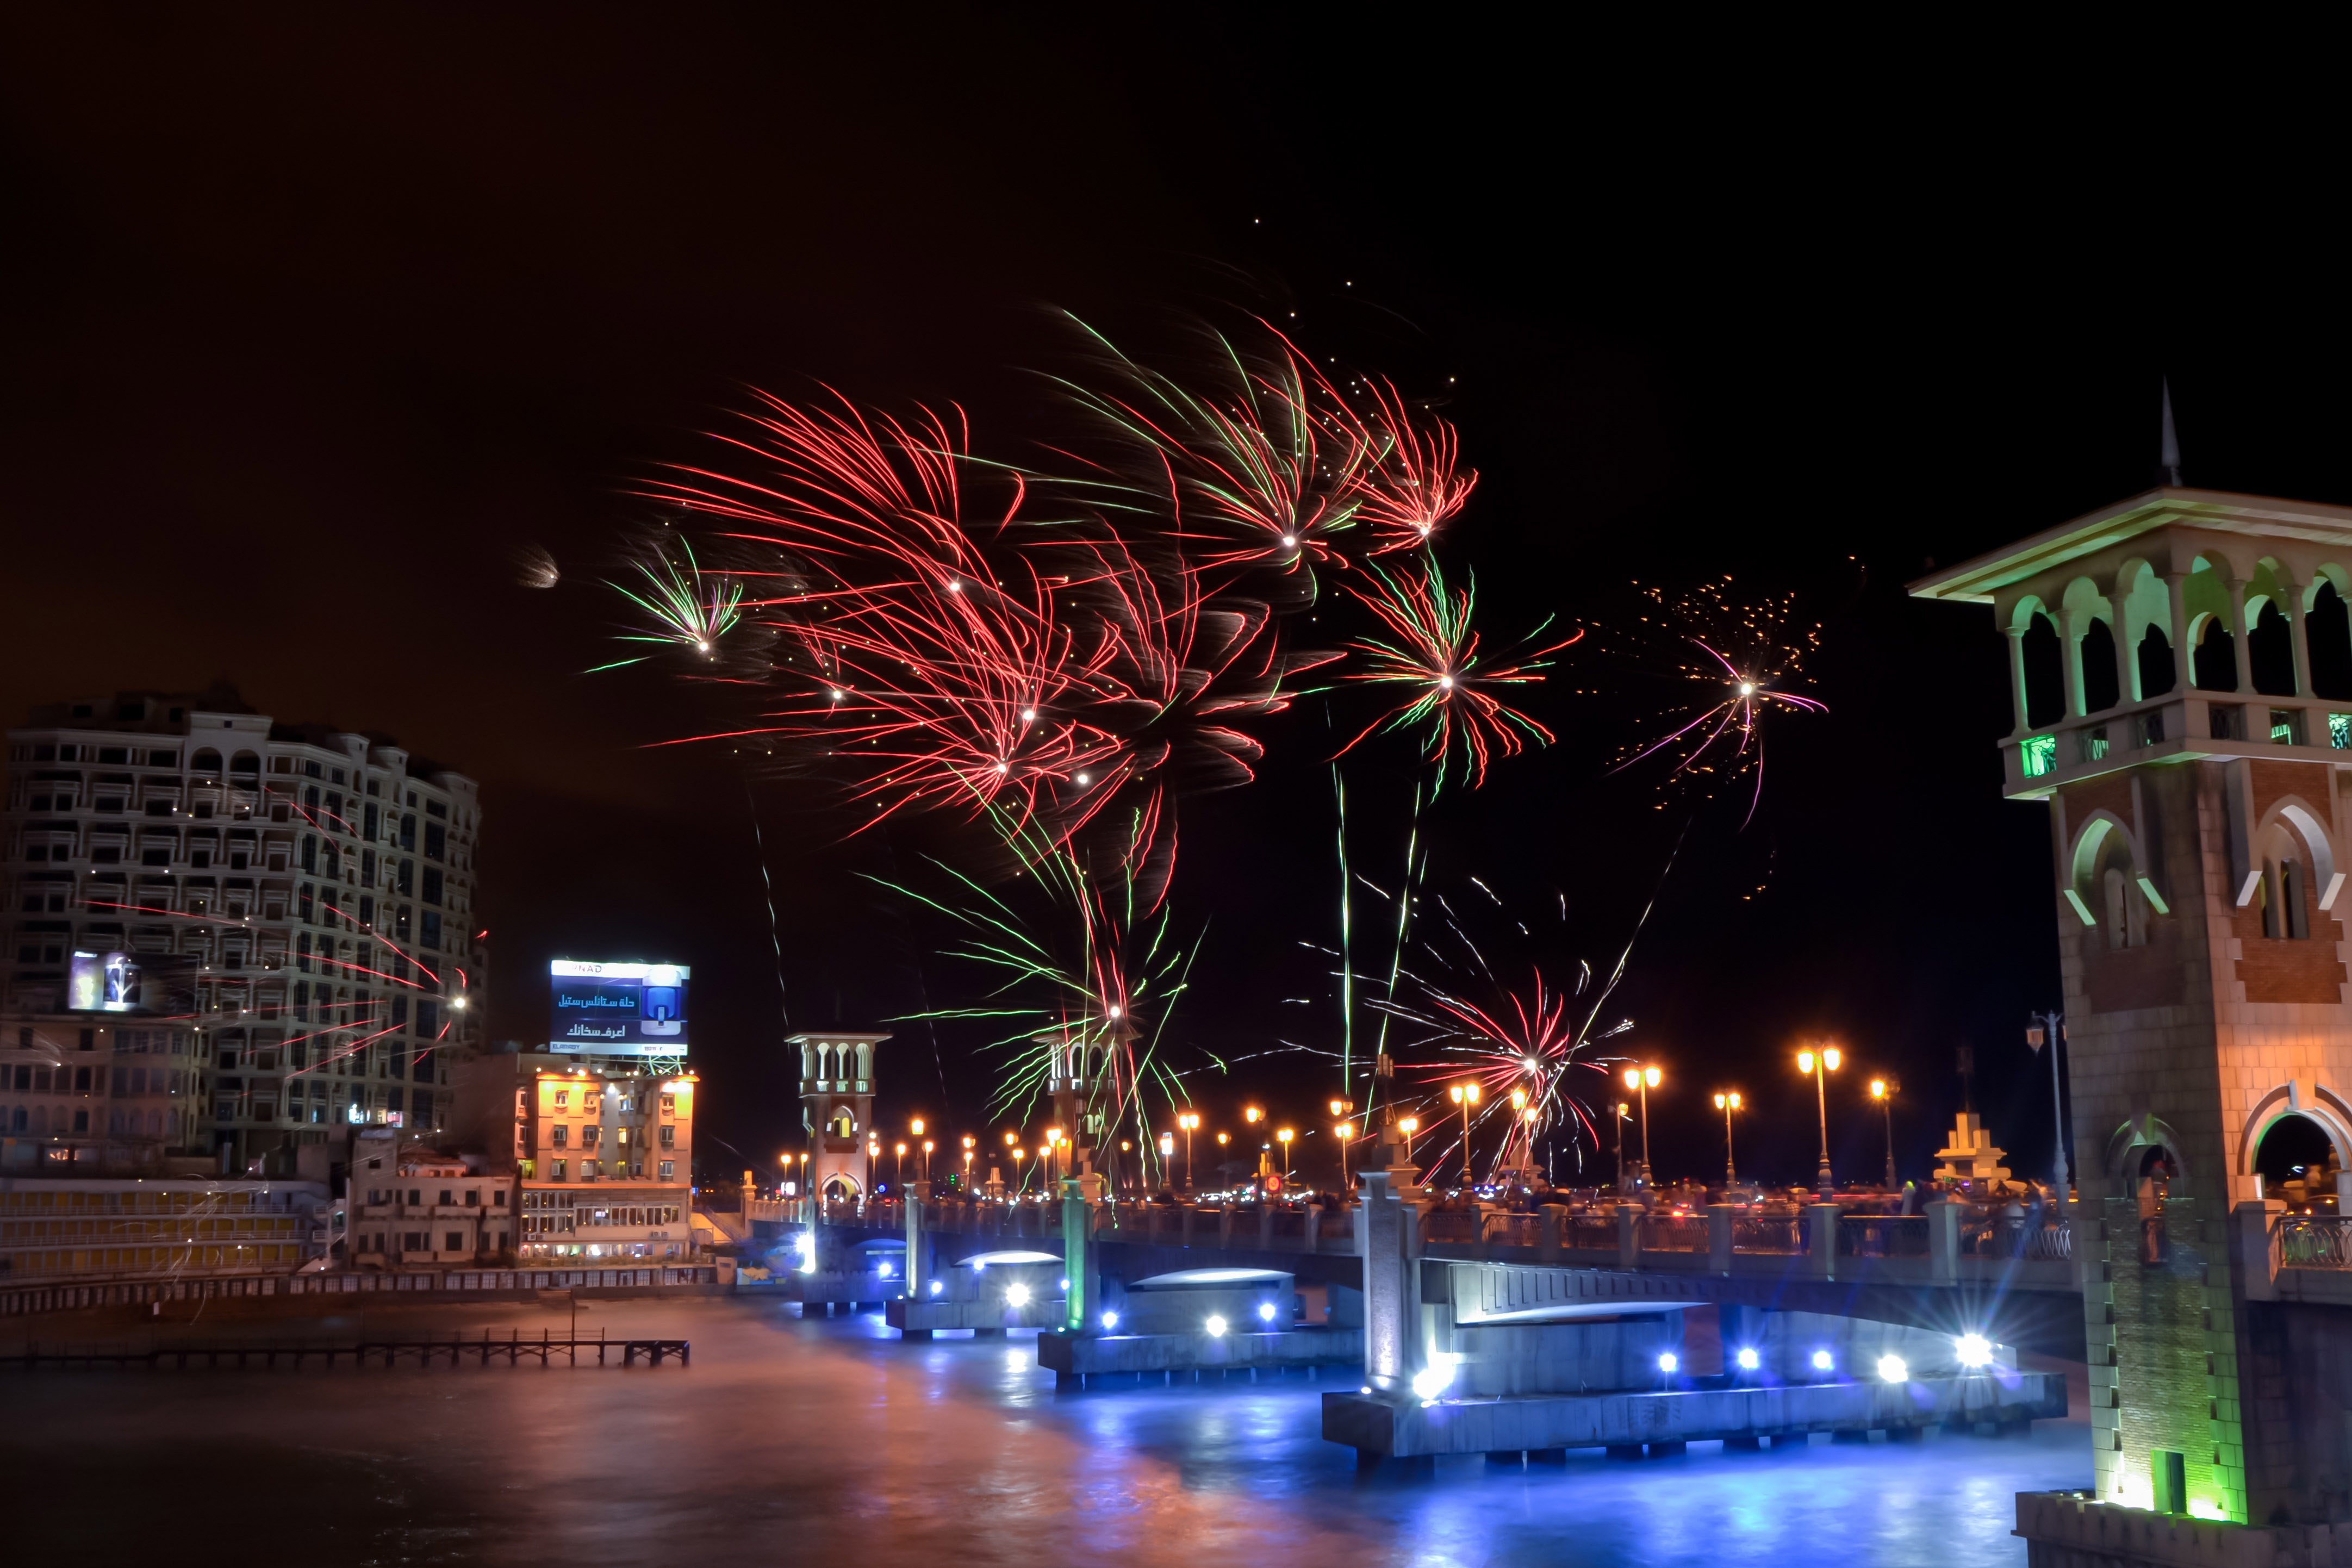 fireworks over the night sky in alexandria egypt image